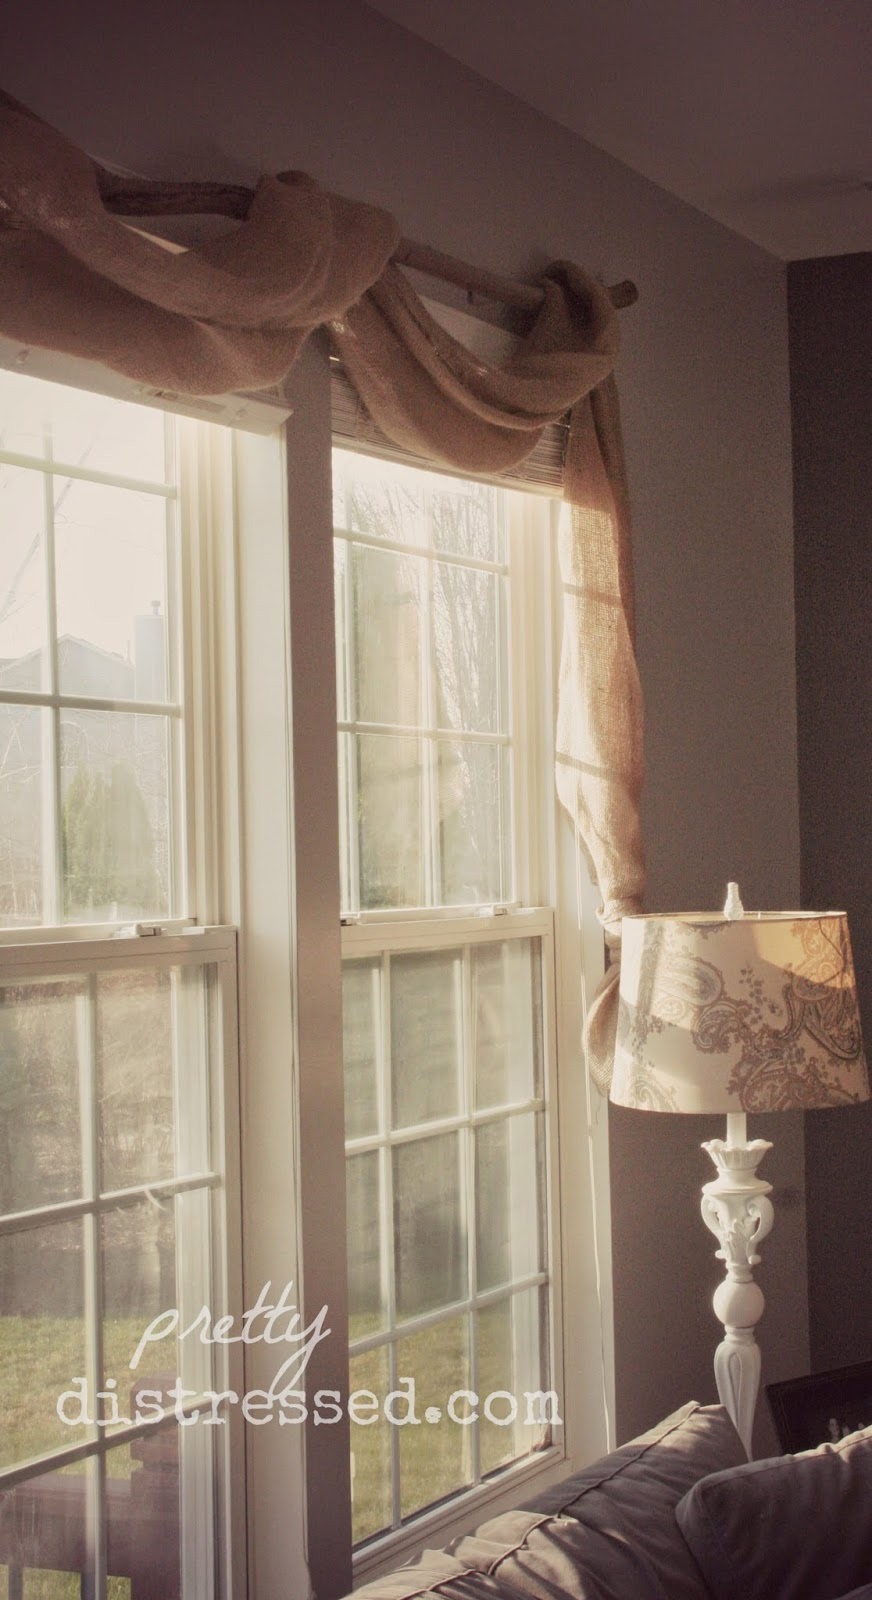 Burlap Valances For Windows : Pretty distressed pin spired diy country chic window